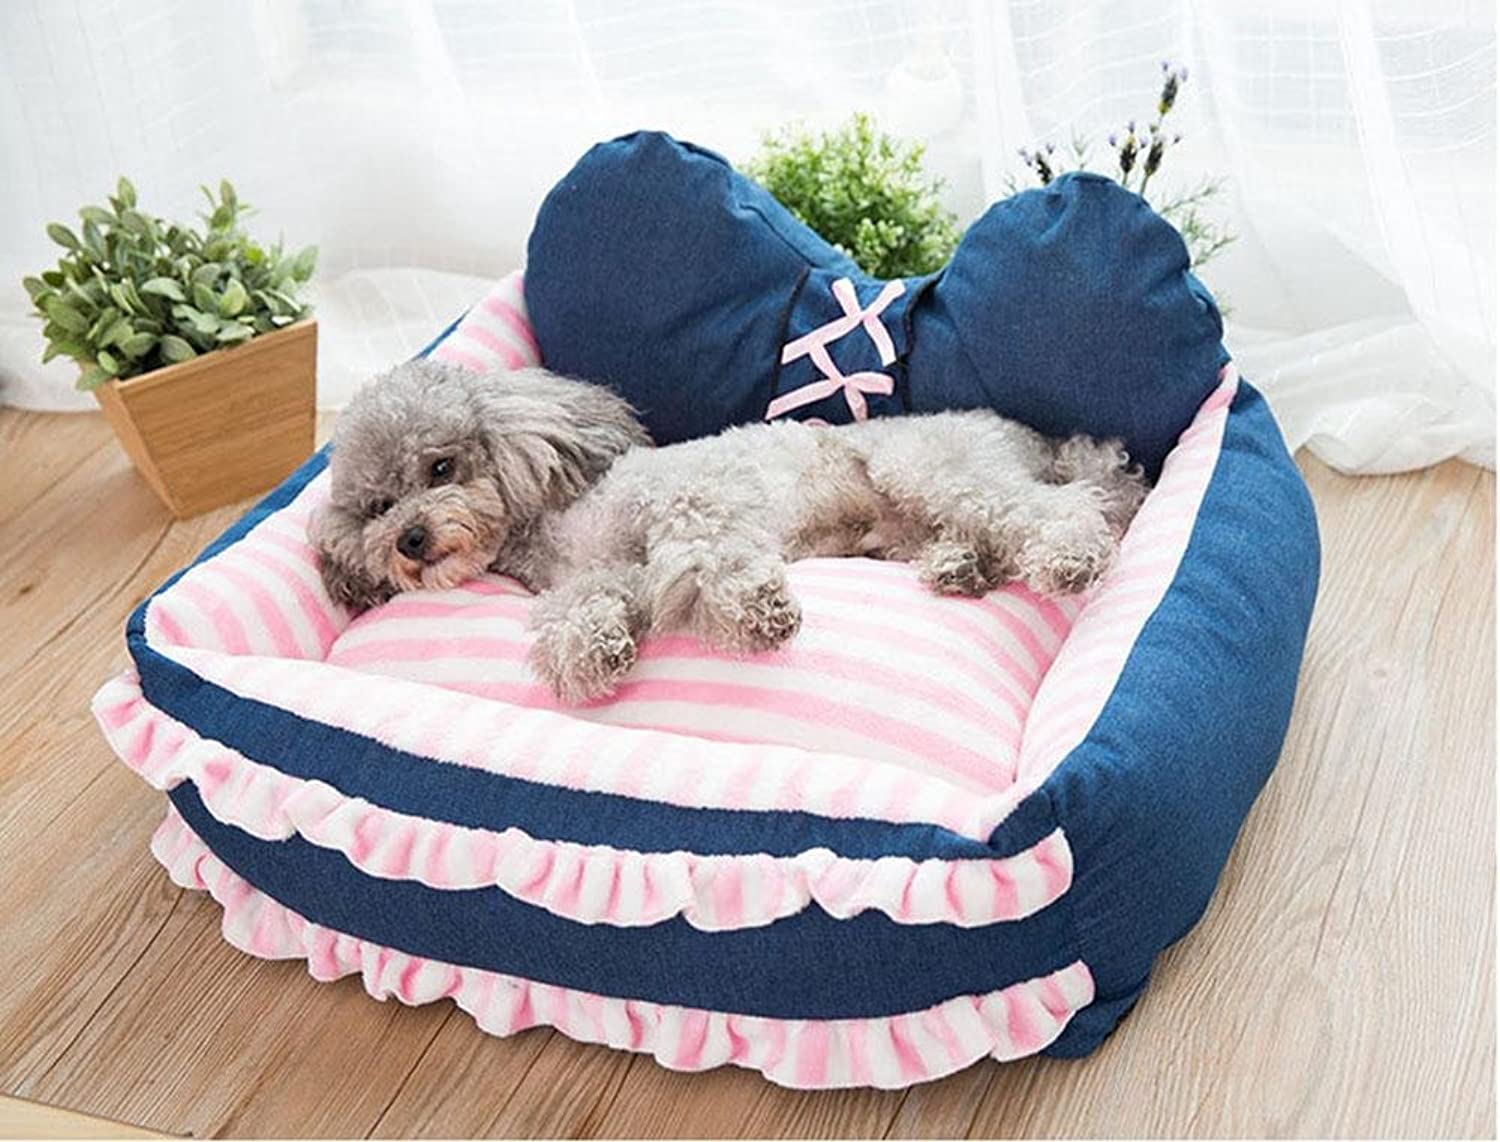 Dog Bed Cat Mat Pet Dog Cat Suppliess Detachable and Washable W24, B, s